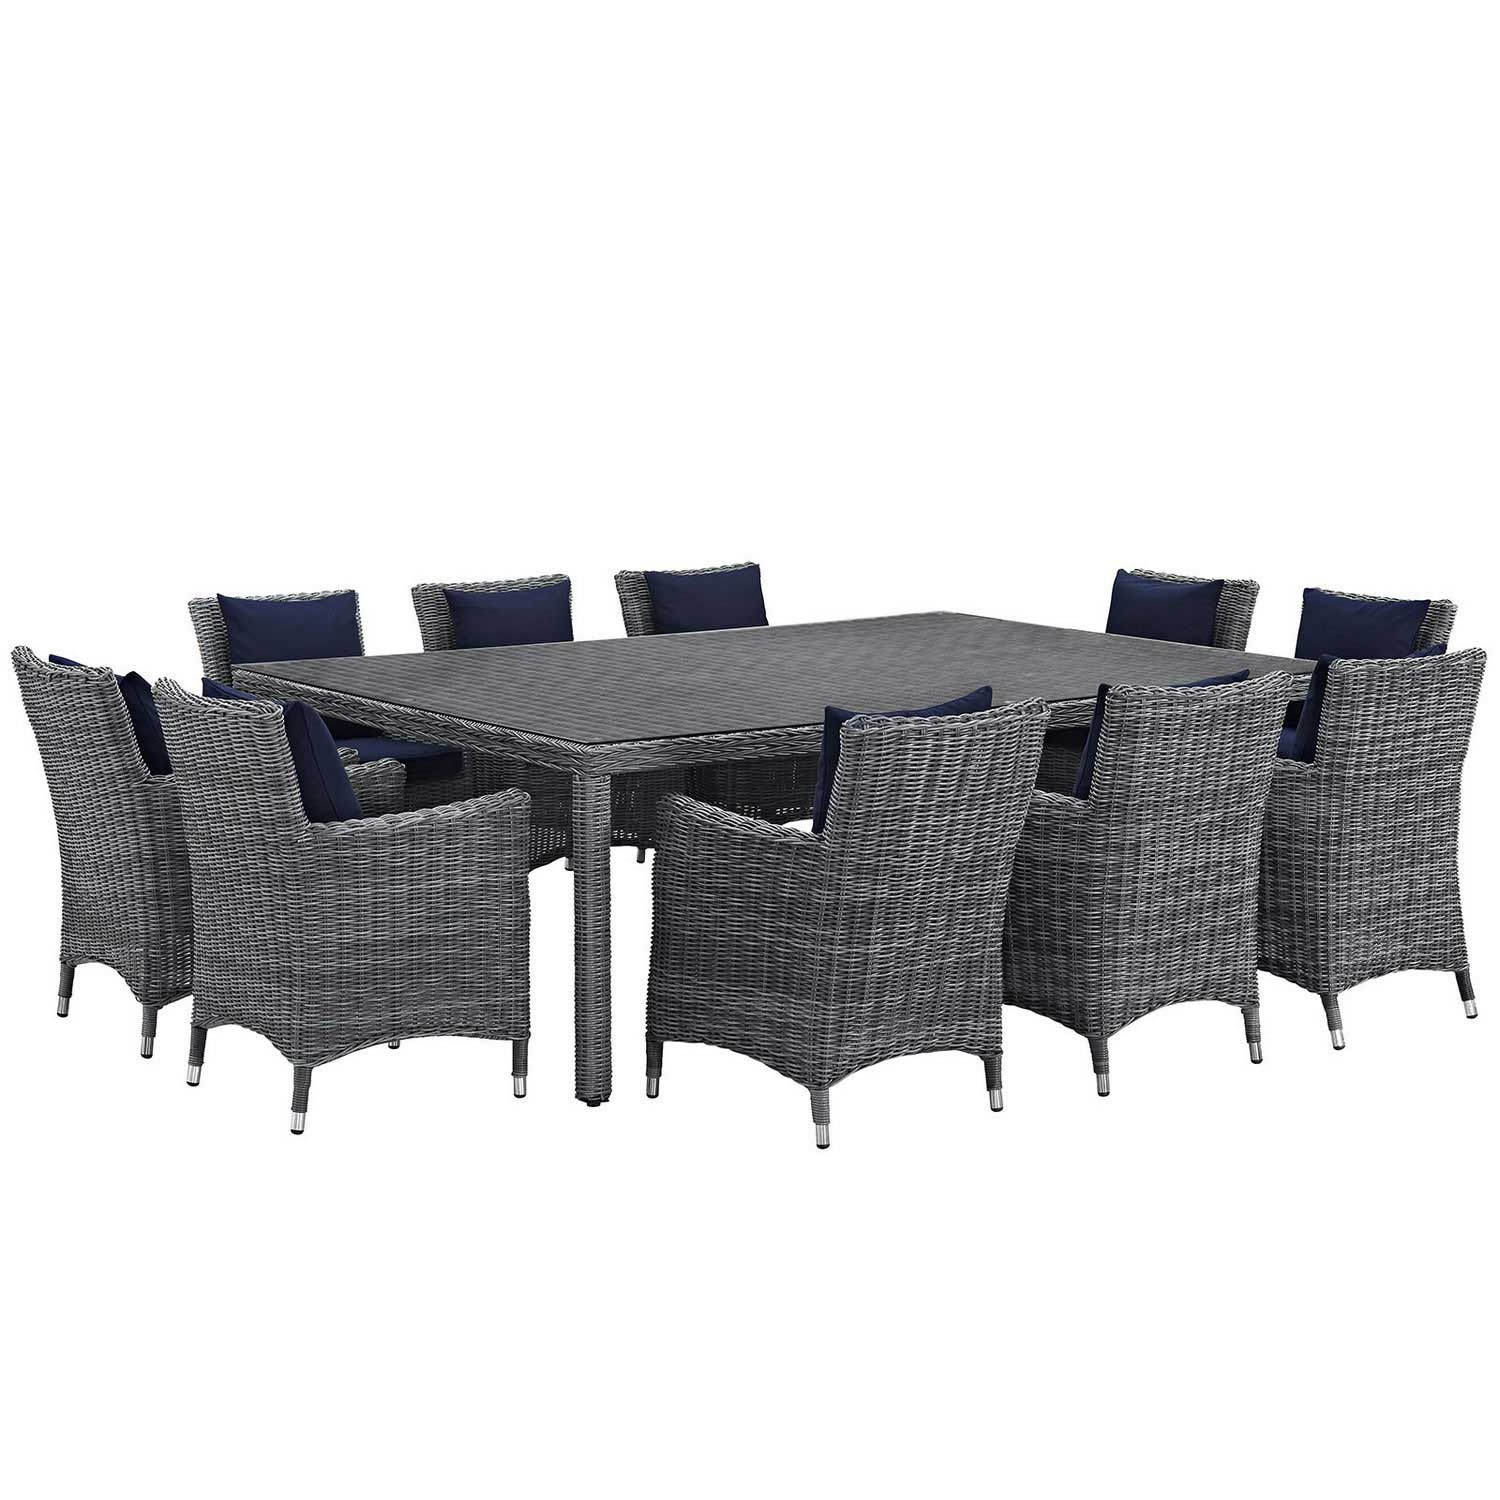 Modway Summon 11 Piece Outdoor Patio Sunbrella Dining Set - Canvas Navy